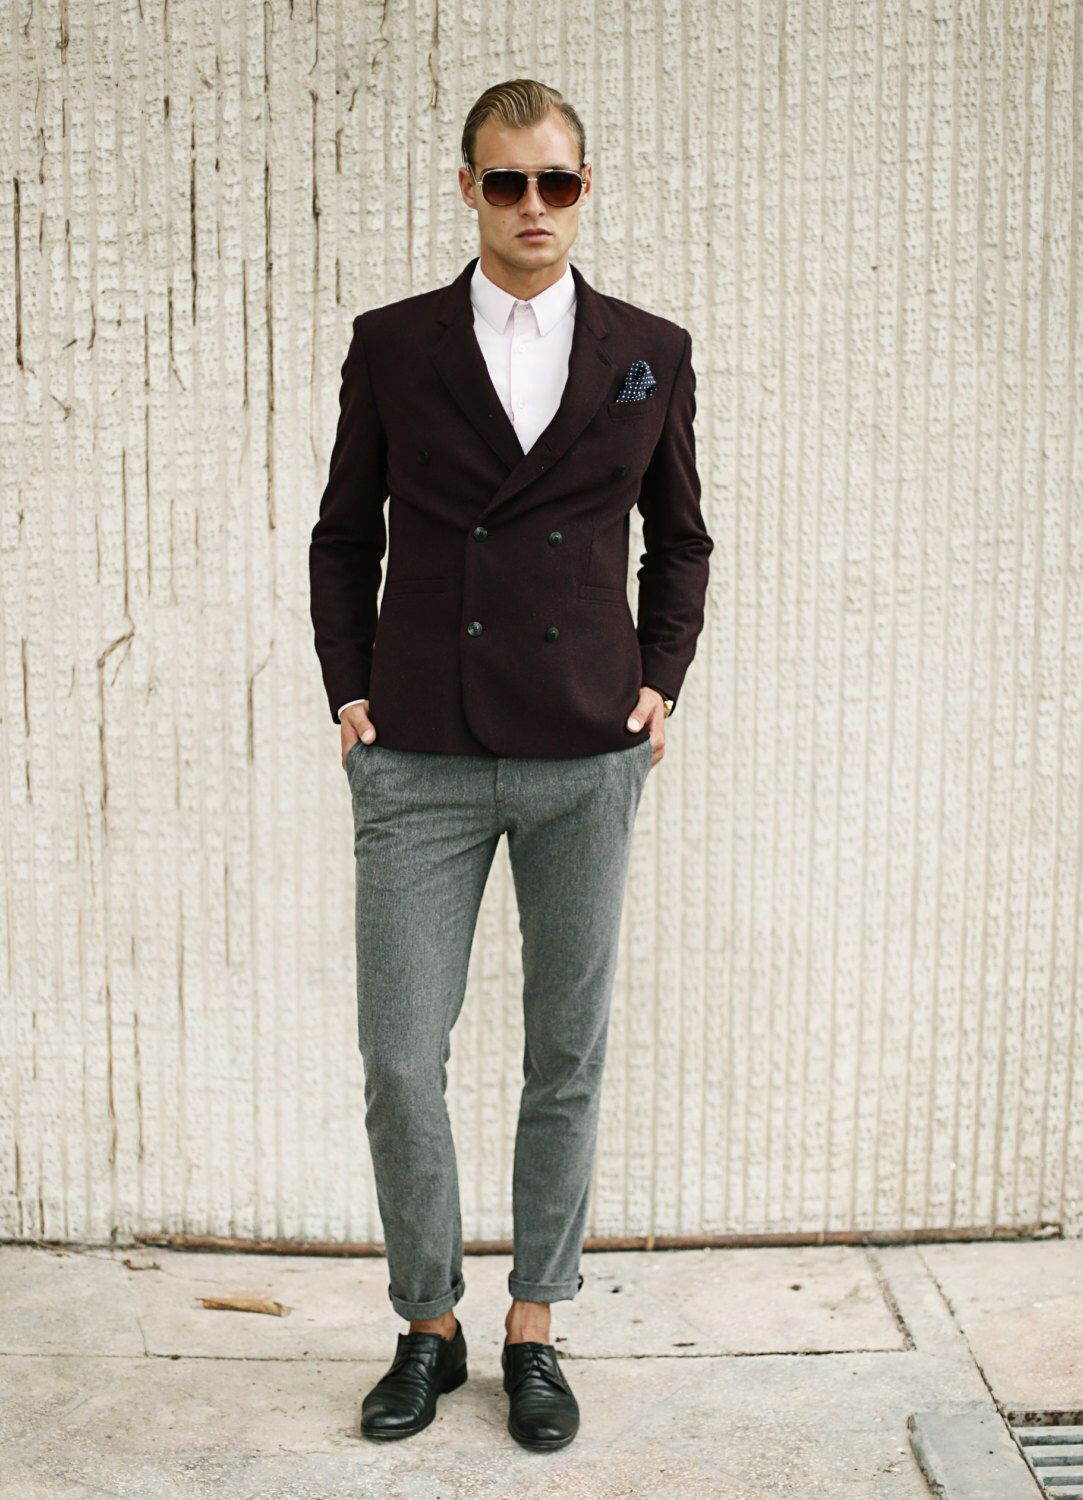 Wool Mens dress pants pictures recommendations to wear for summer in 2019